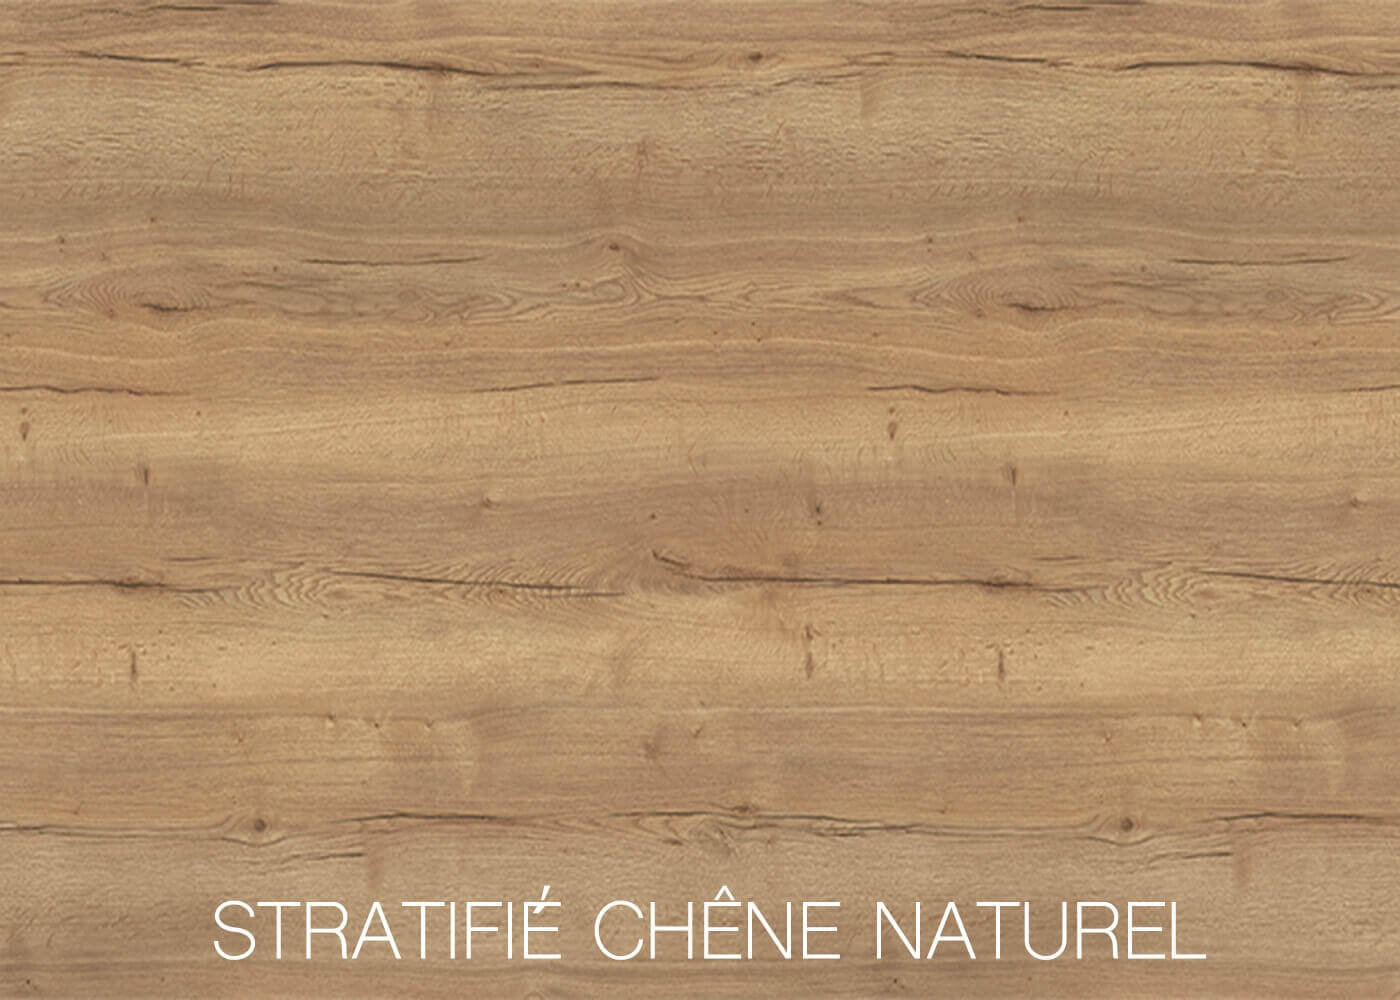 STRATIFIE CHENE NATUREL